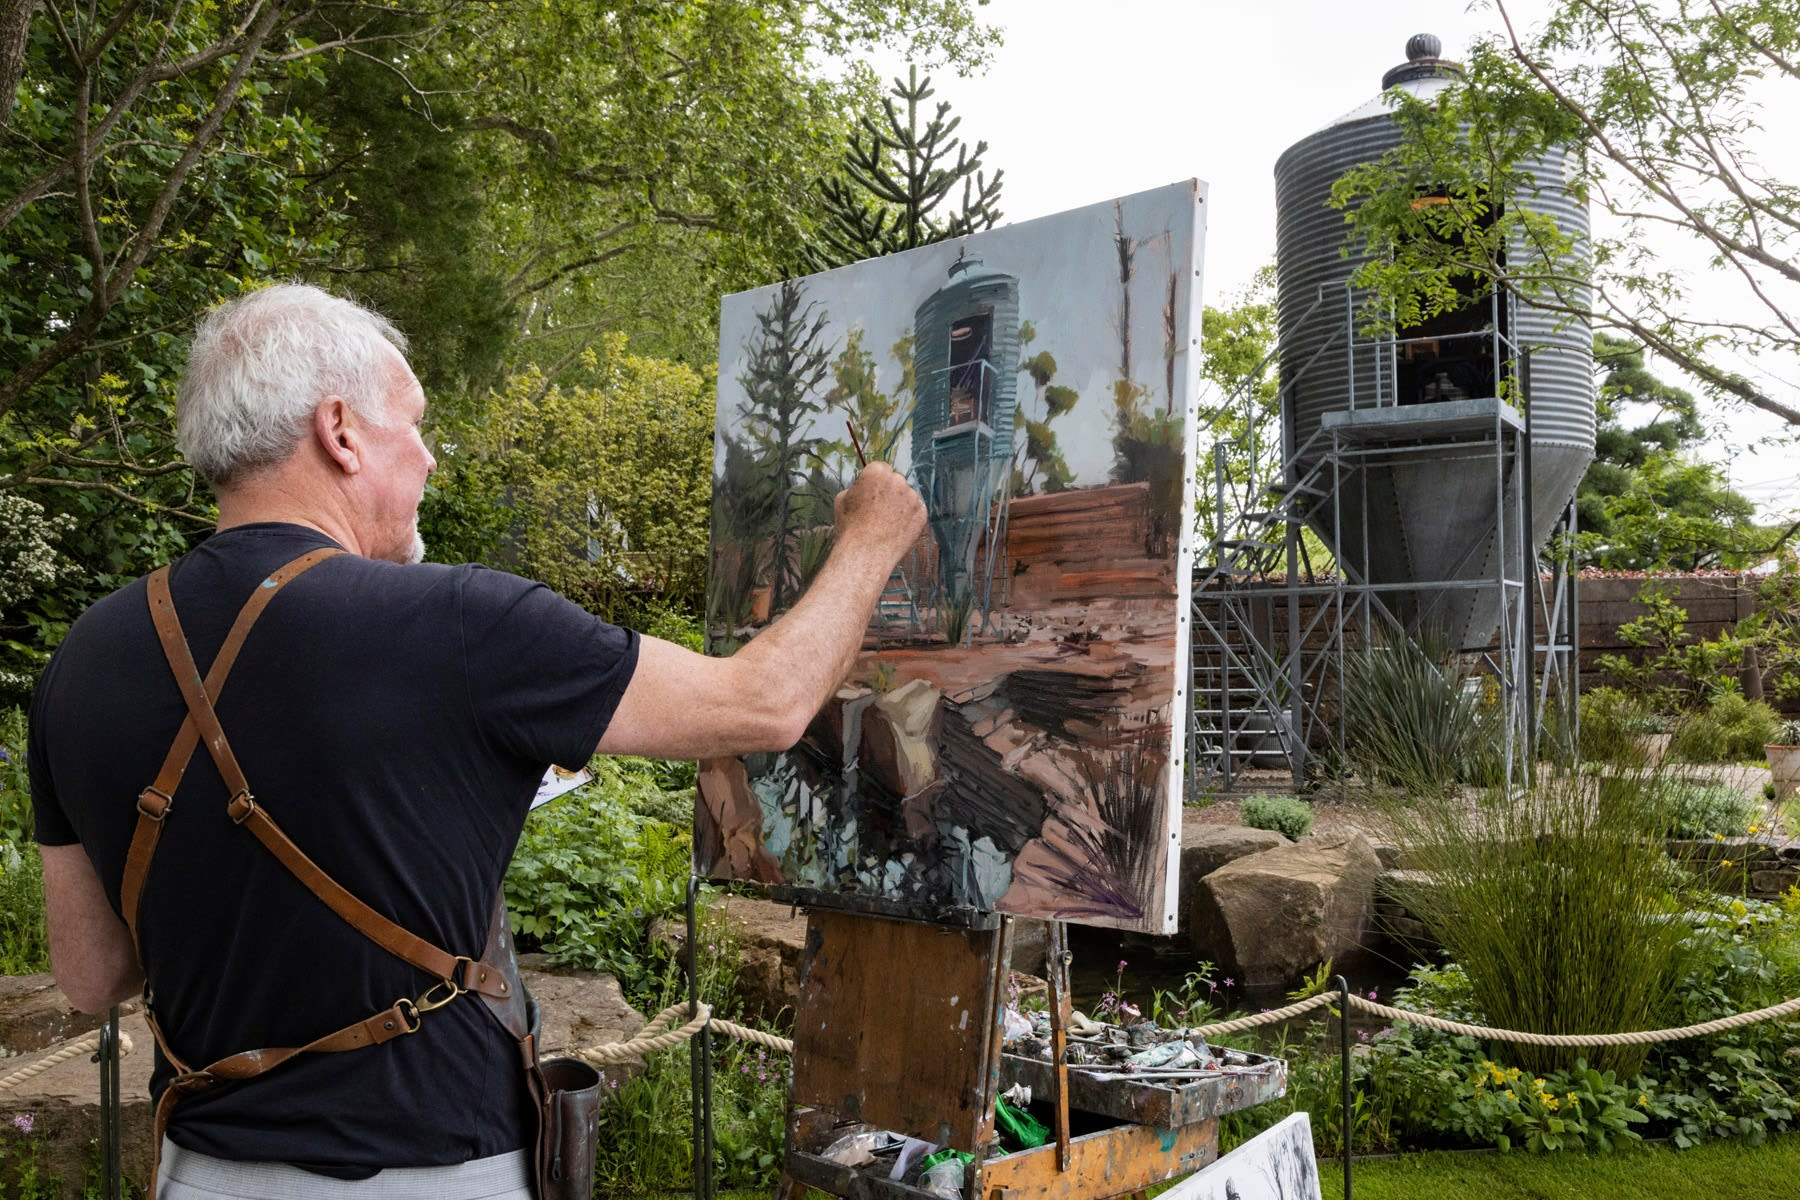 19 MAY 2019 CHELSEA FLOWER SHOW, LONDON The Resilience Garden, Designer: Sarah Eberle The Resilience Garden photo: Bettina Strenske / Alamy Photos